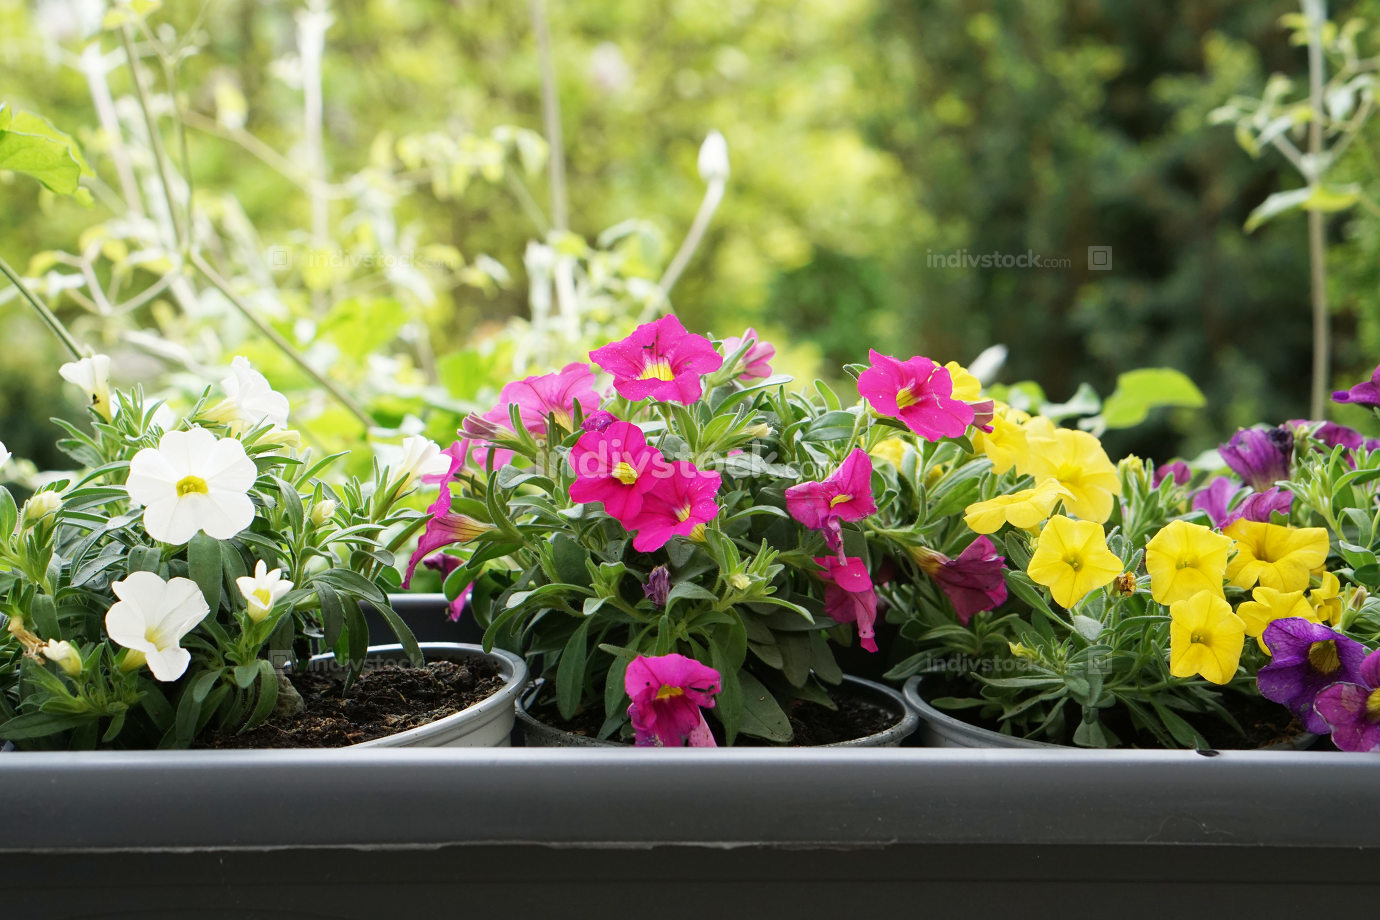 outdoor garden flower pot view